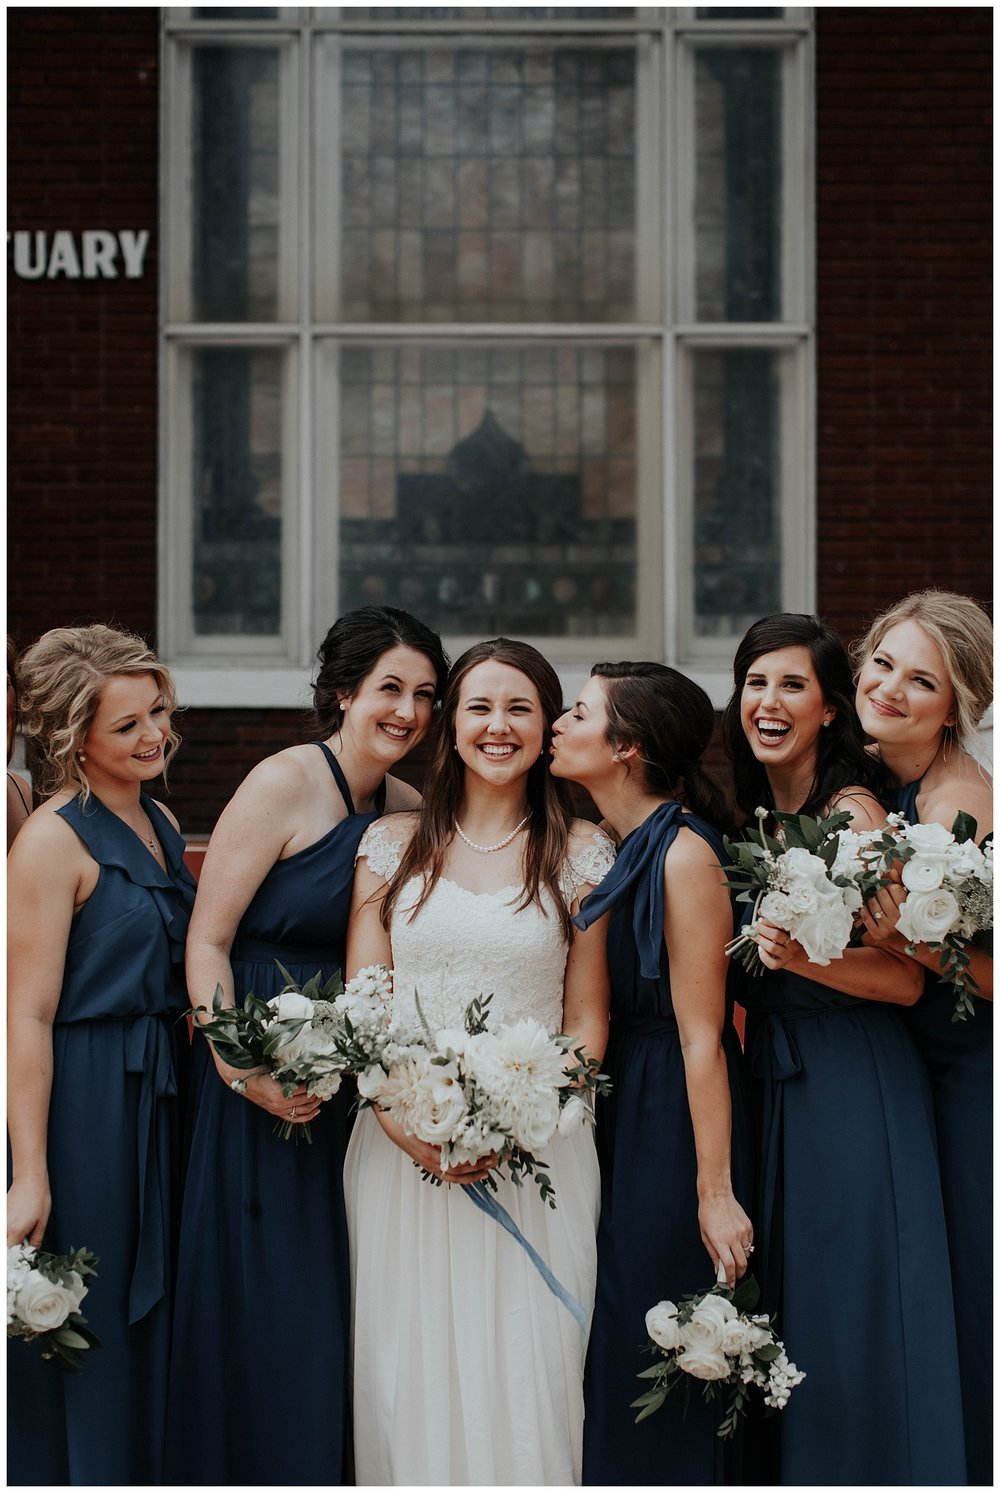 Madalynn Young Photography | Sarah Catherine + Will | Bridge Street Gallery and Loft | Atlanta Wedding Photographer_0289.jpg